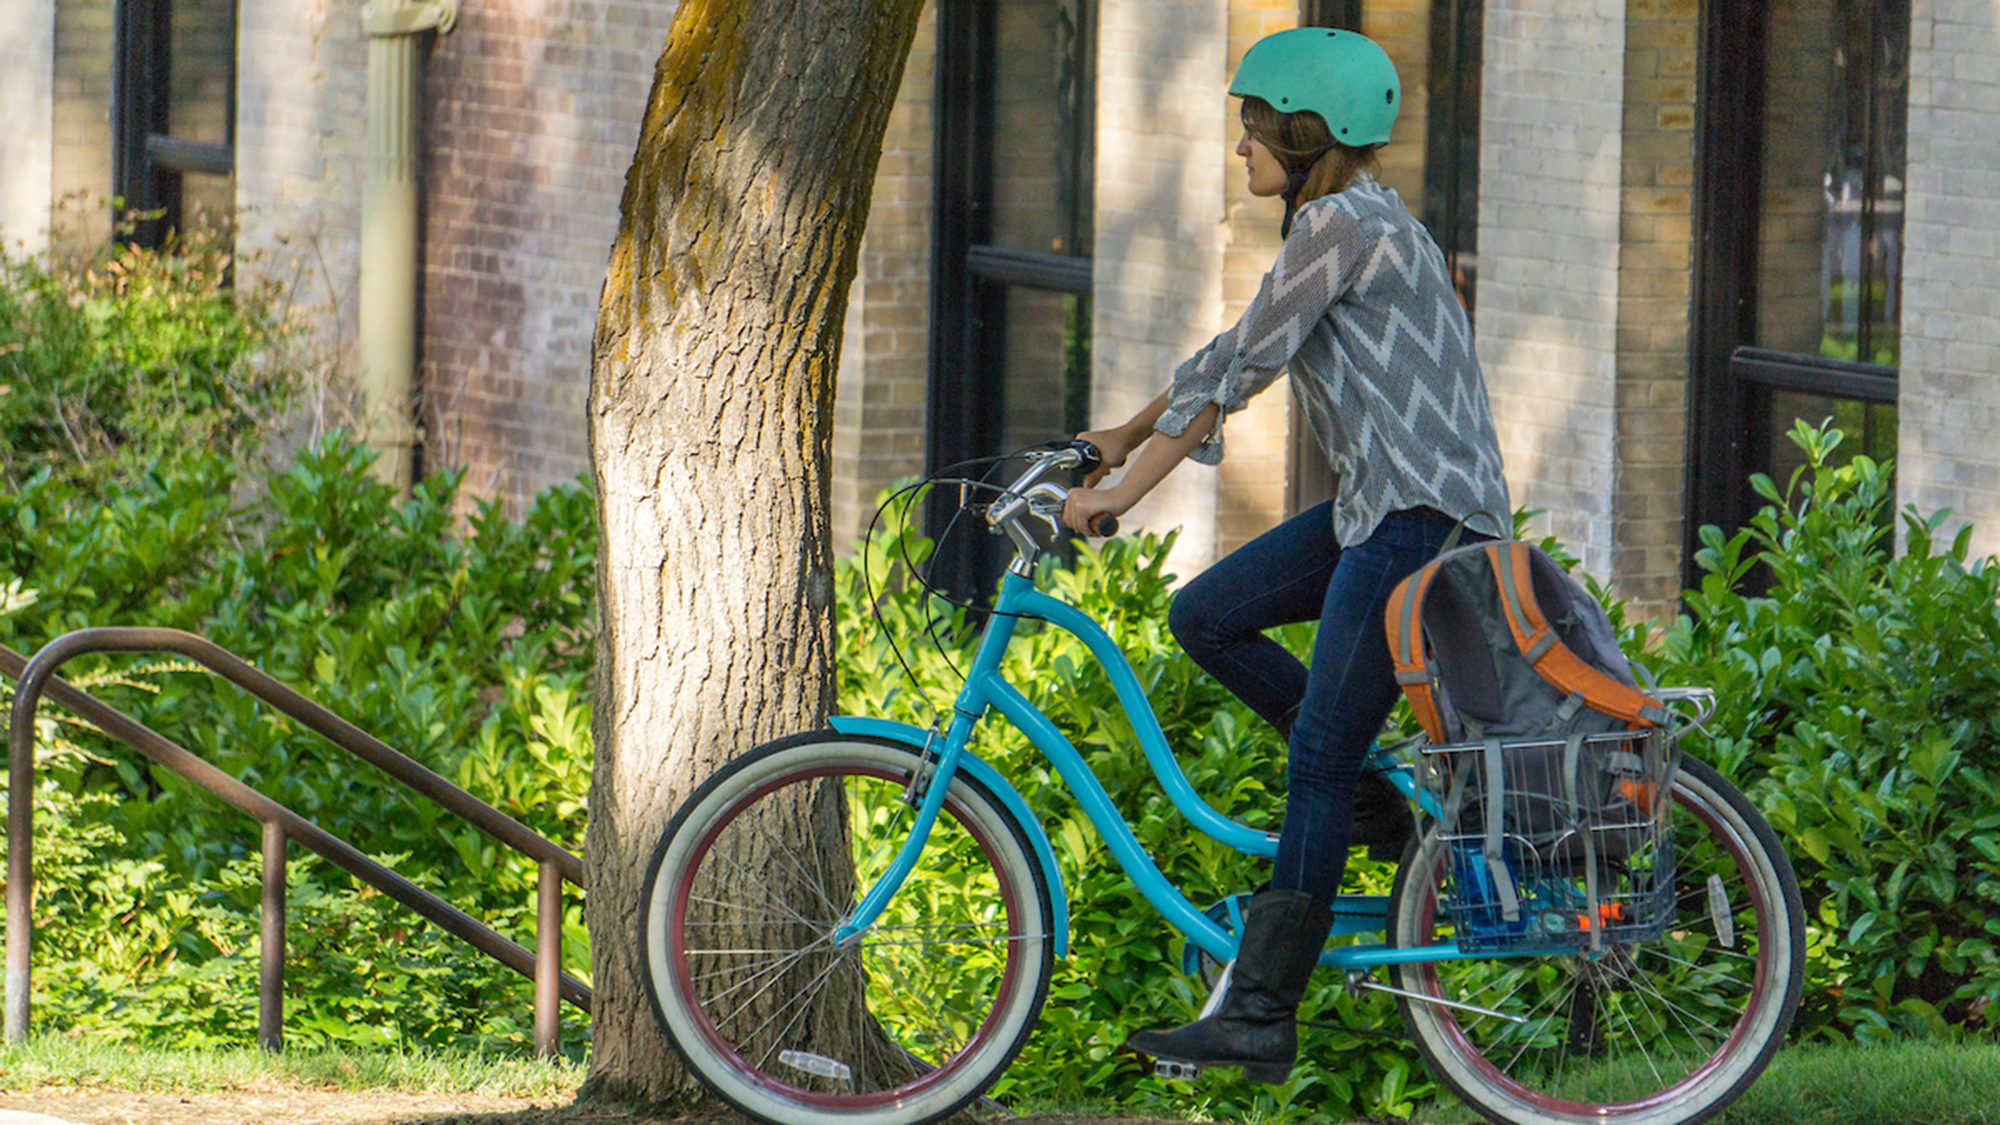 person on a teal bike with a teal helmet riding past a tree with green bushes in the background.